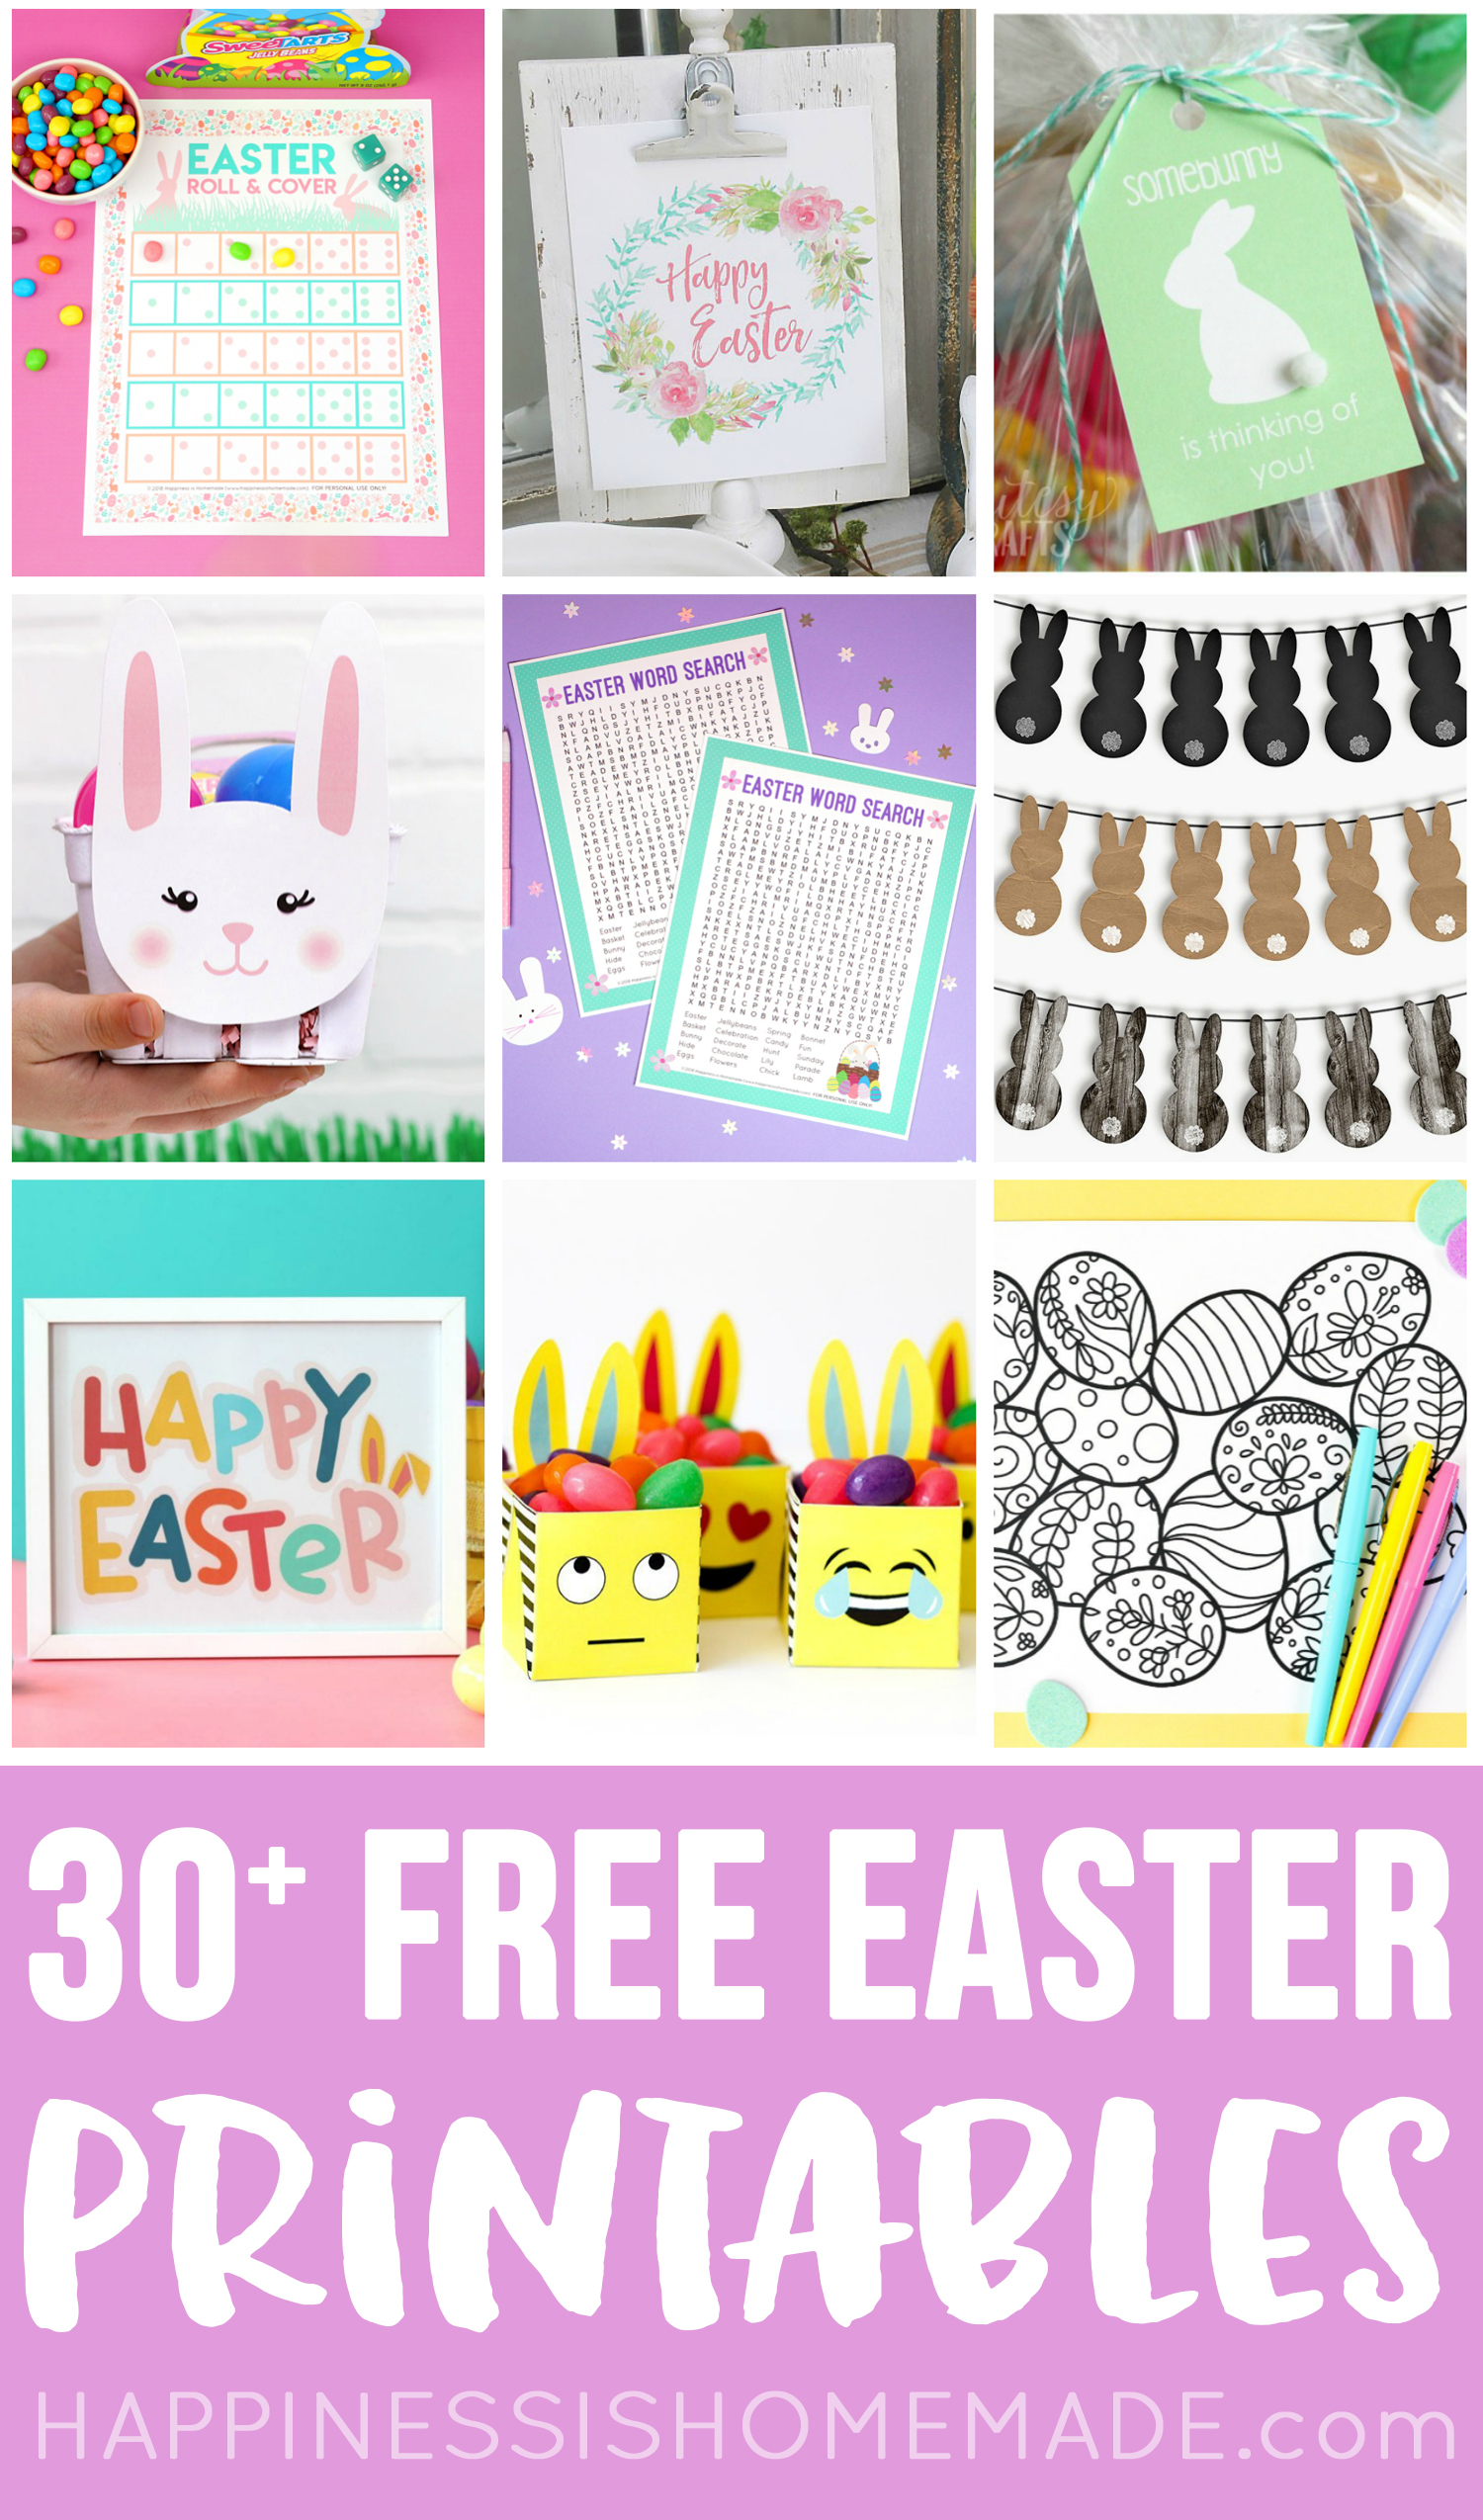 30+ Totally Free Easter Printables - we've got them all! Easter home decor, kids printables, Easter games, coloring pages, gift boxes, treat tags, and more!